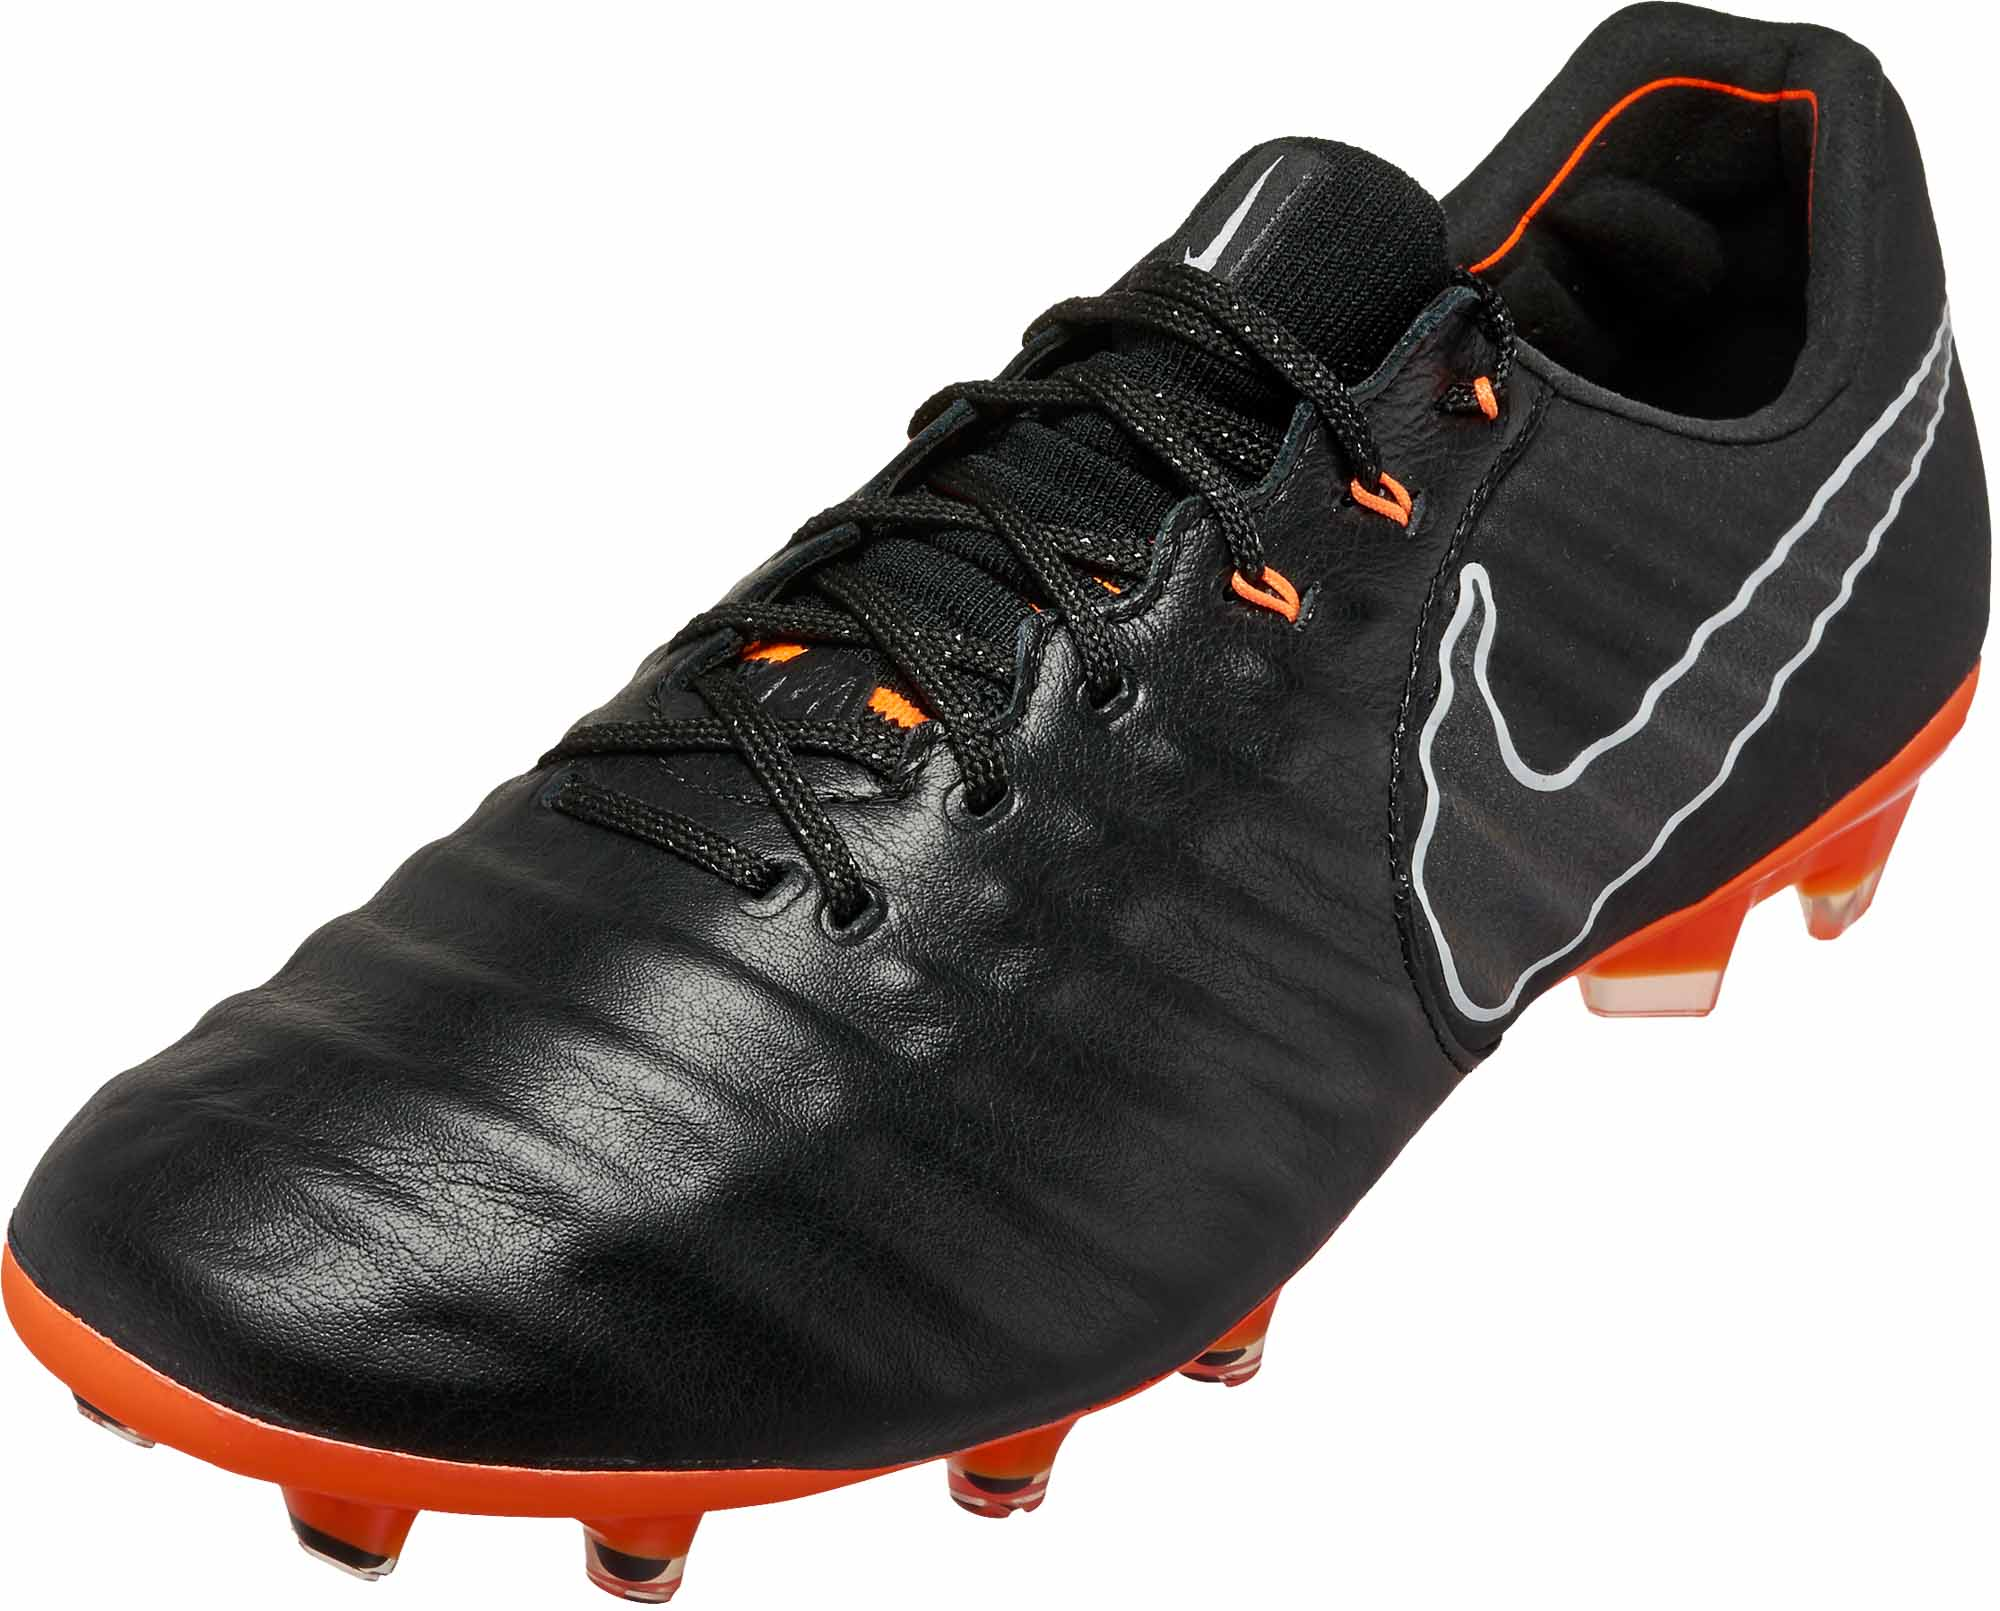 Nike Tiempo Legend 7 Elite FG – Black Total Orange 2e395ad79